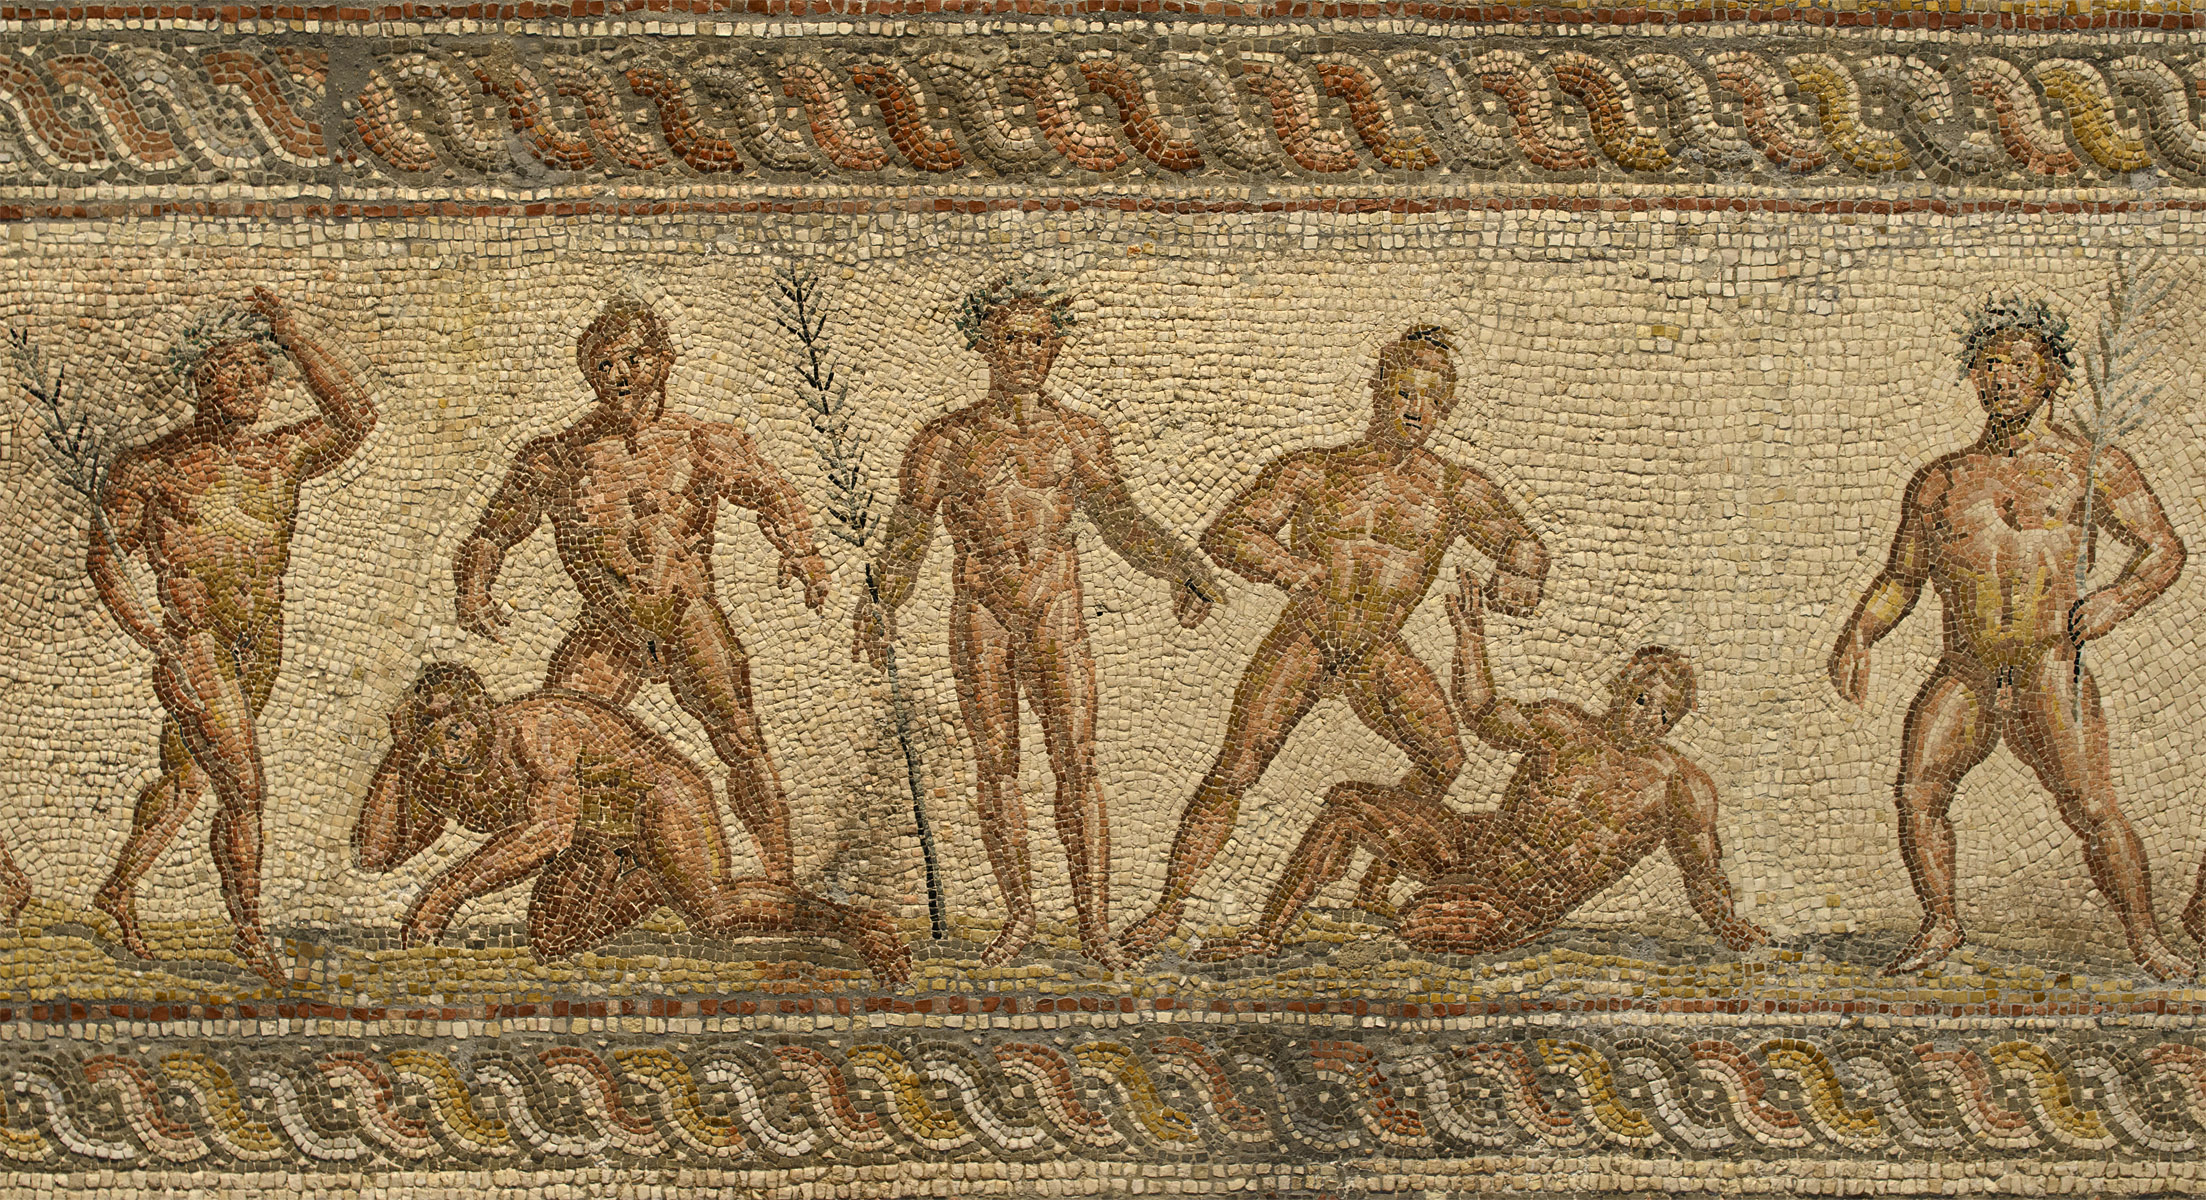 Mosaic floor with artistic and athletic contests (close-up). Patras. Late 2nd — early 3rd cent. CE. Patras, New Archaeological Museum